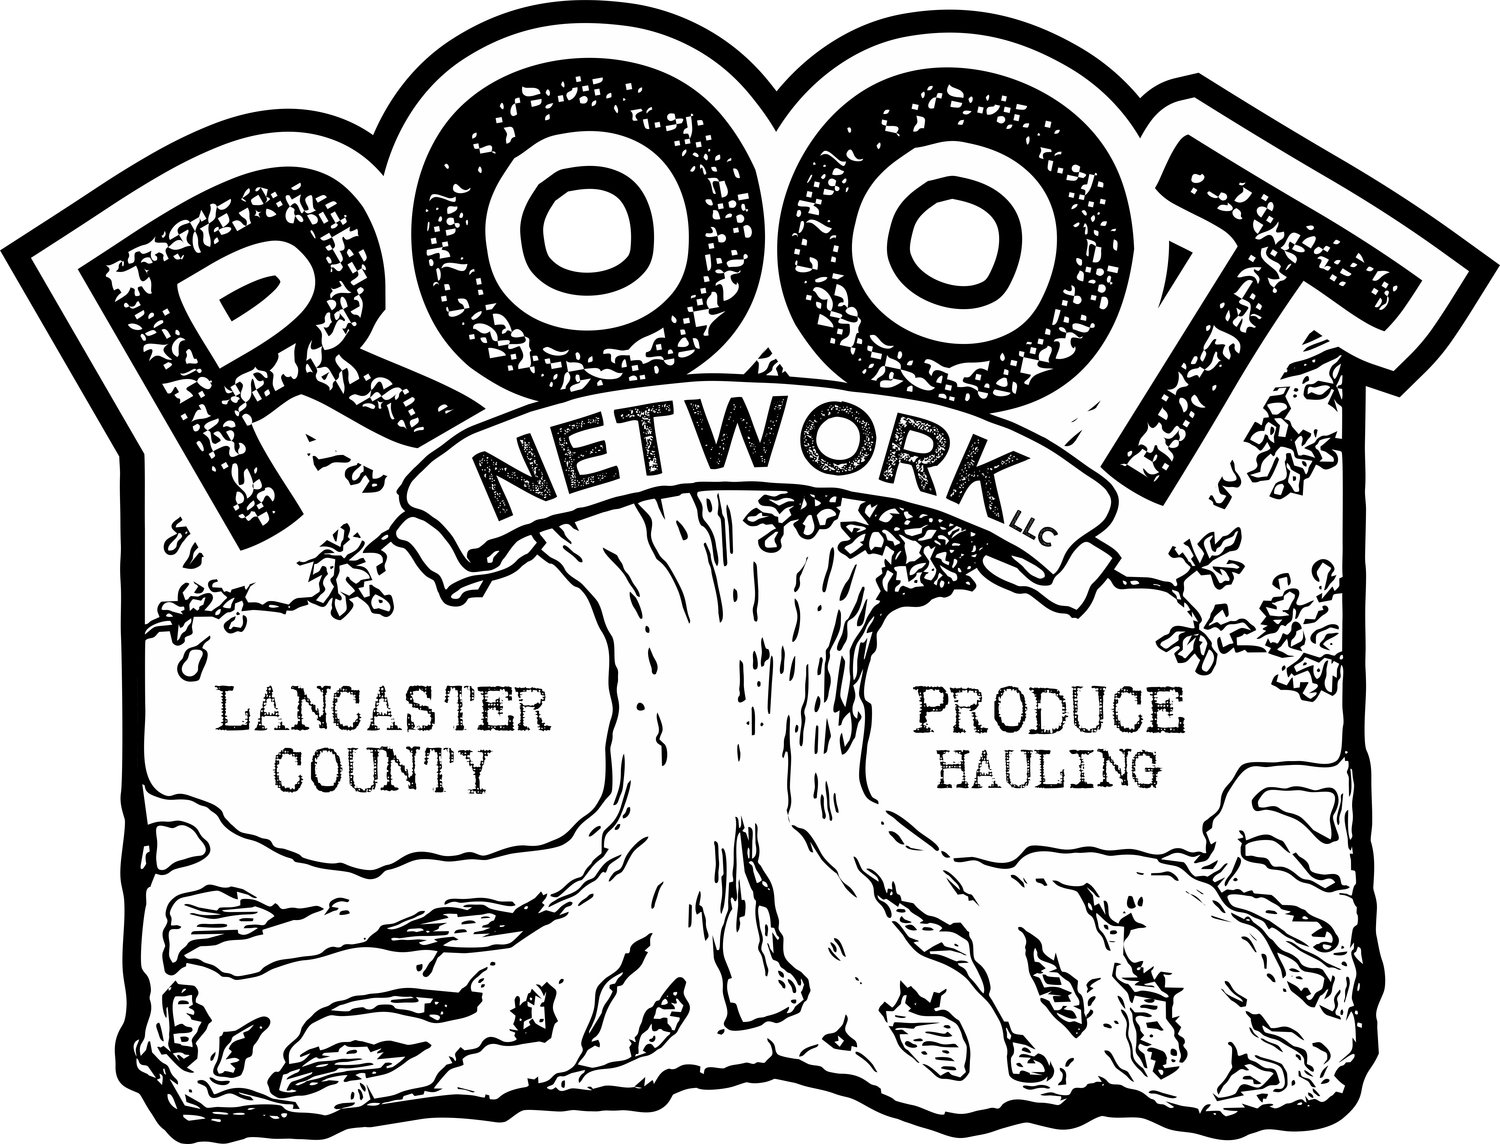 Root Network, LLC